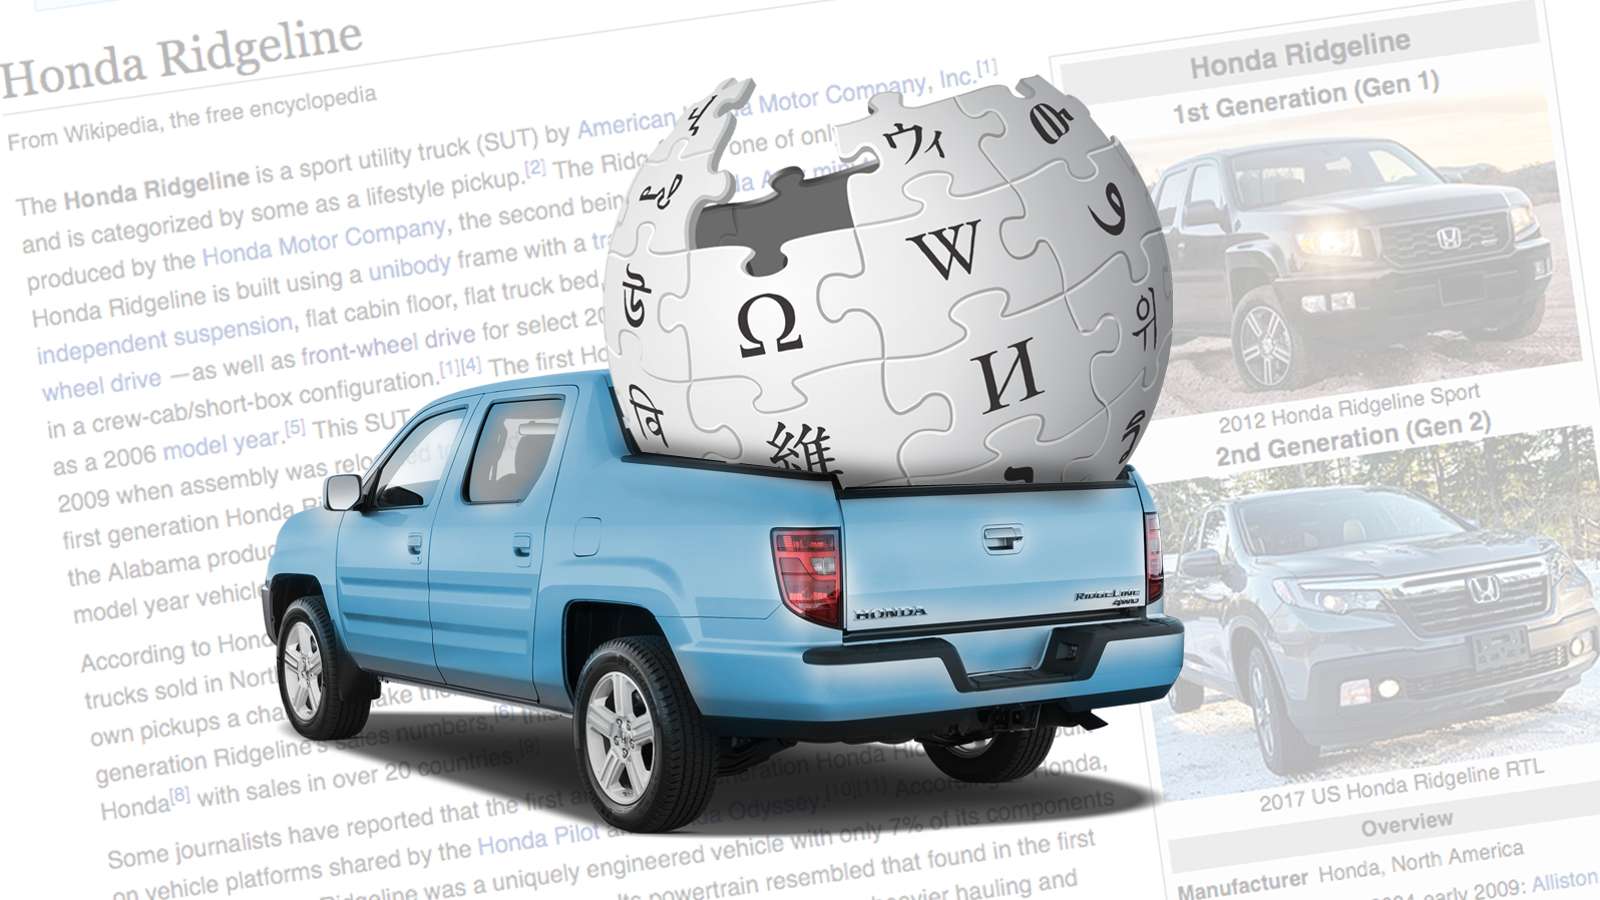 The Story Behind Honda Ridgelines Wildly Unusually Detailed Wikipedia Page